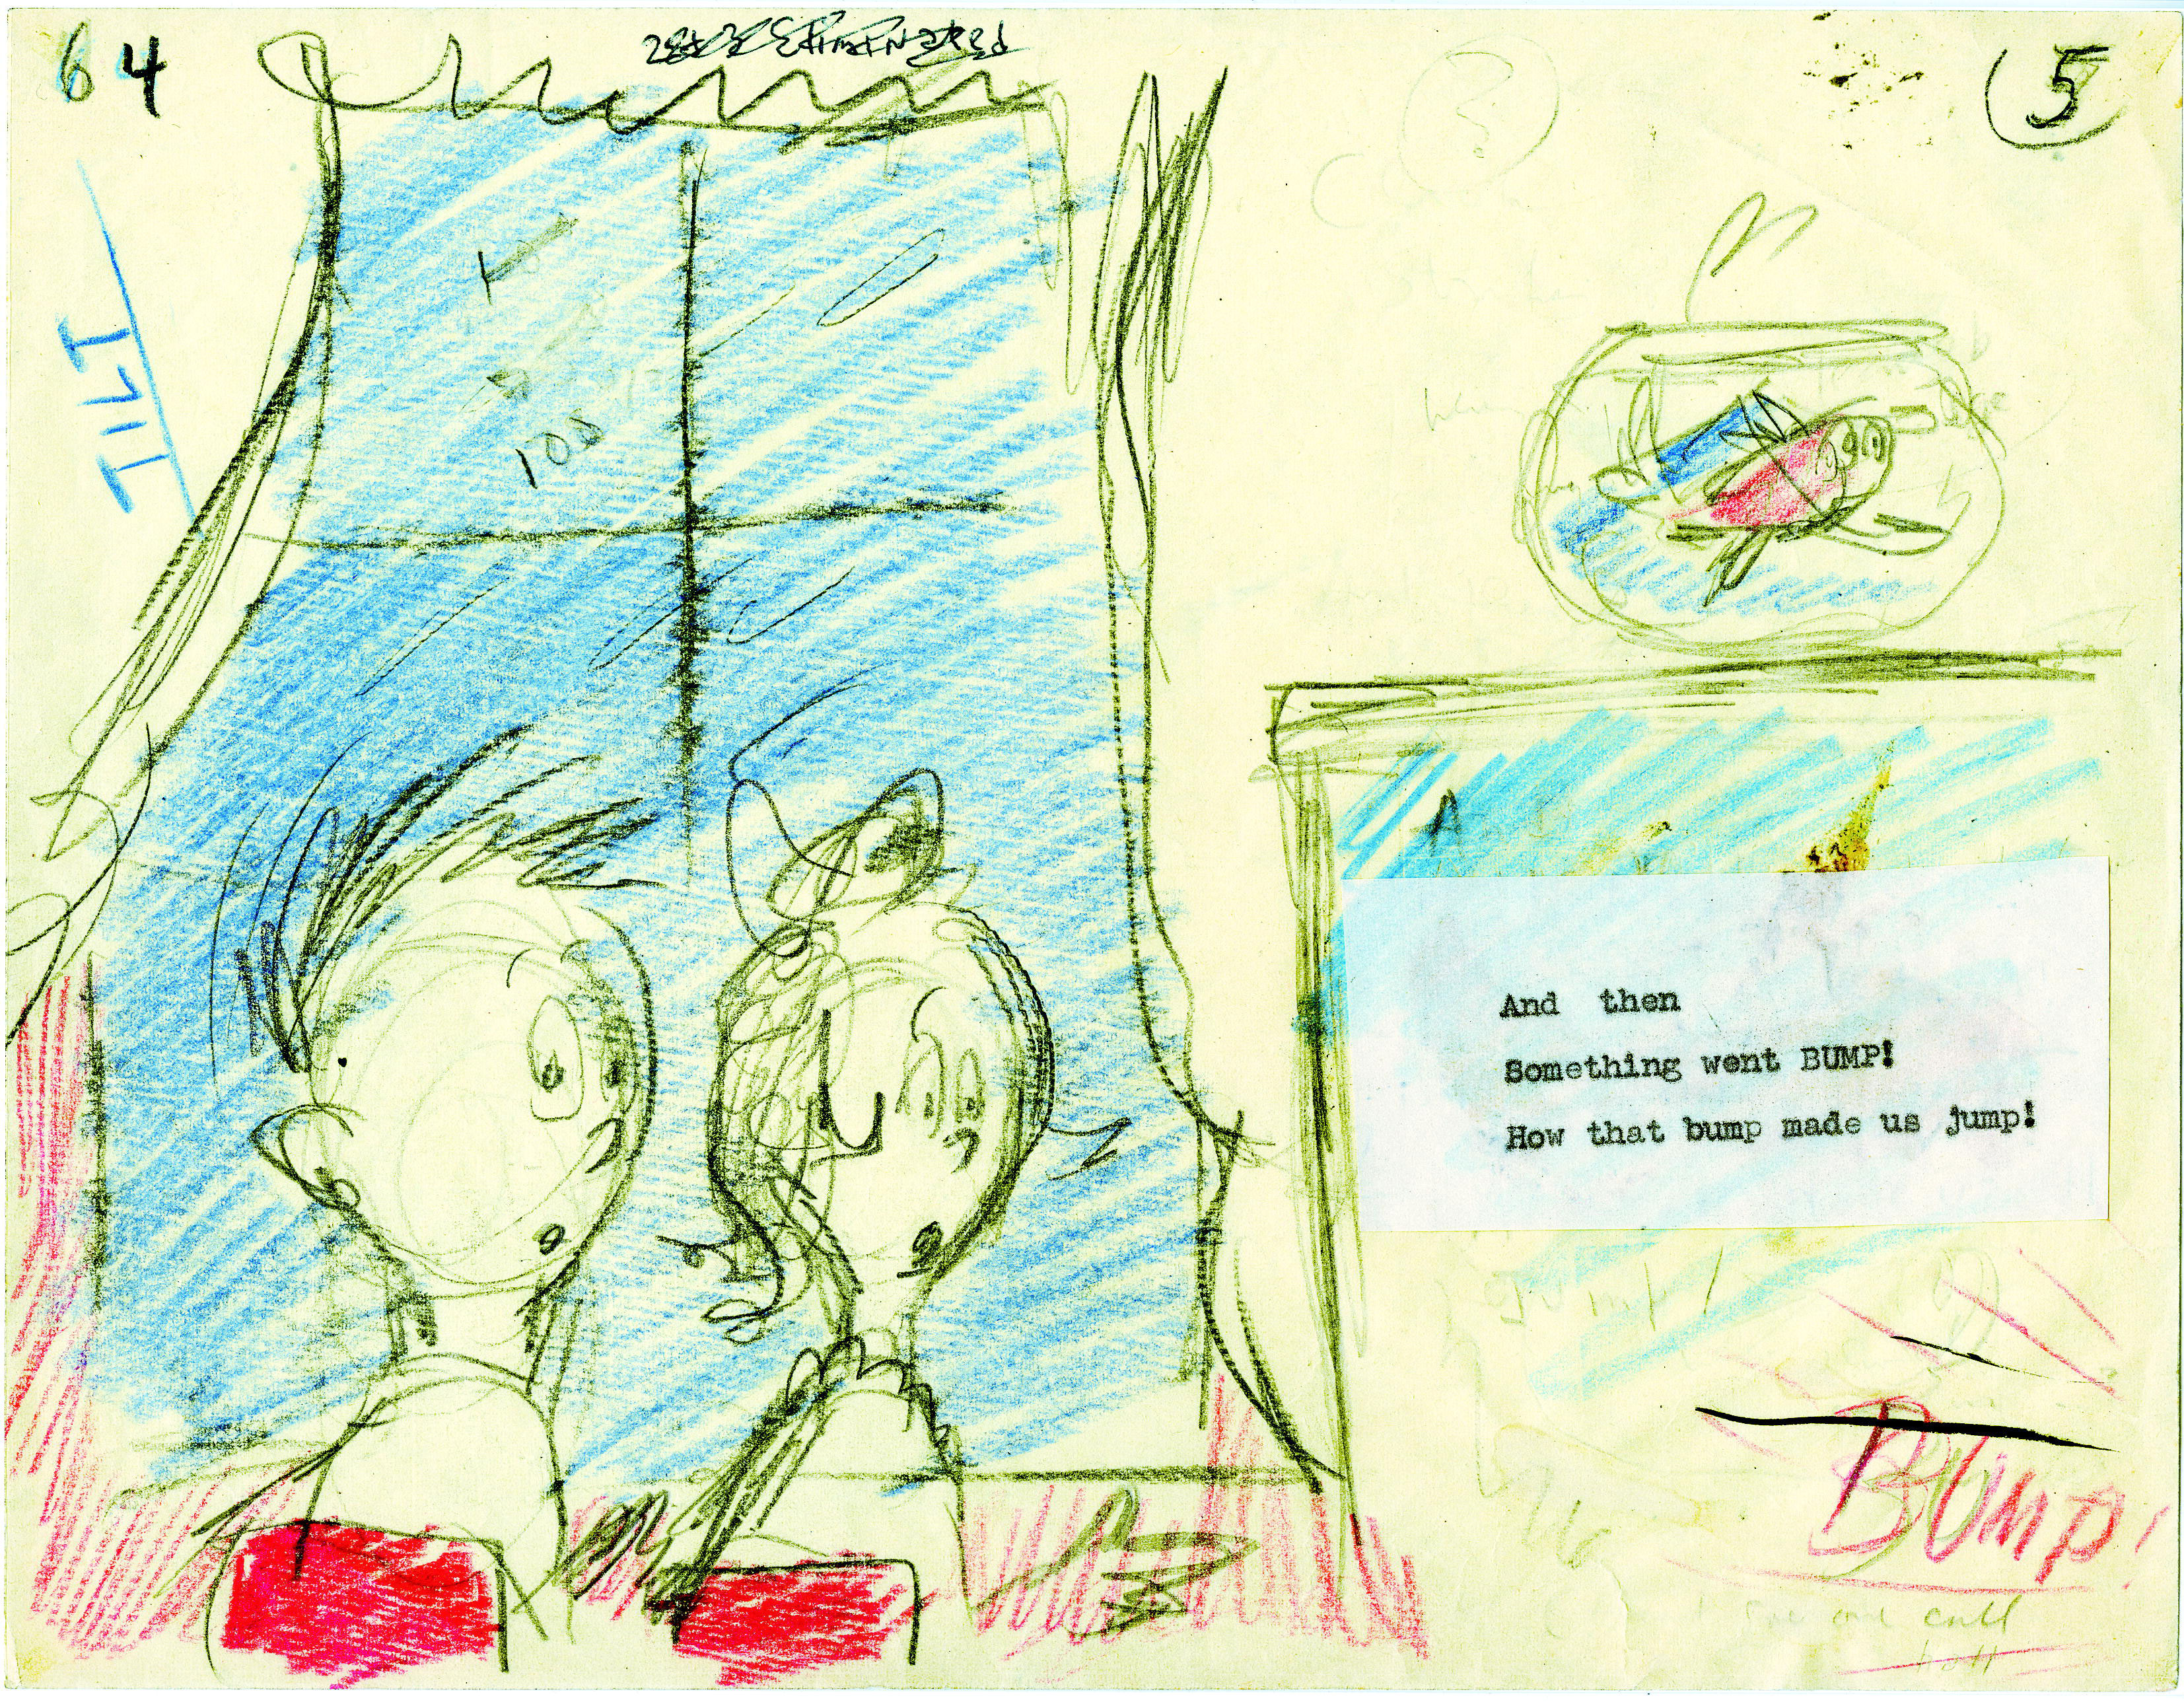 Cat_In_The_Hat_AnnotatedSketches_pg32.jpg